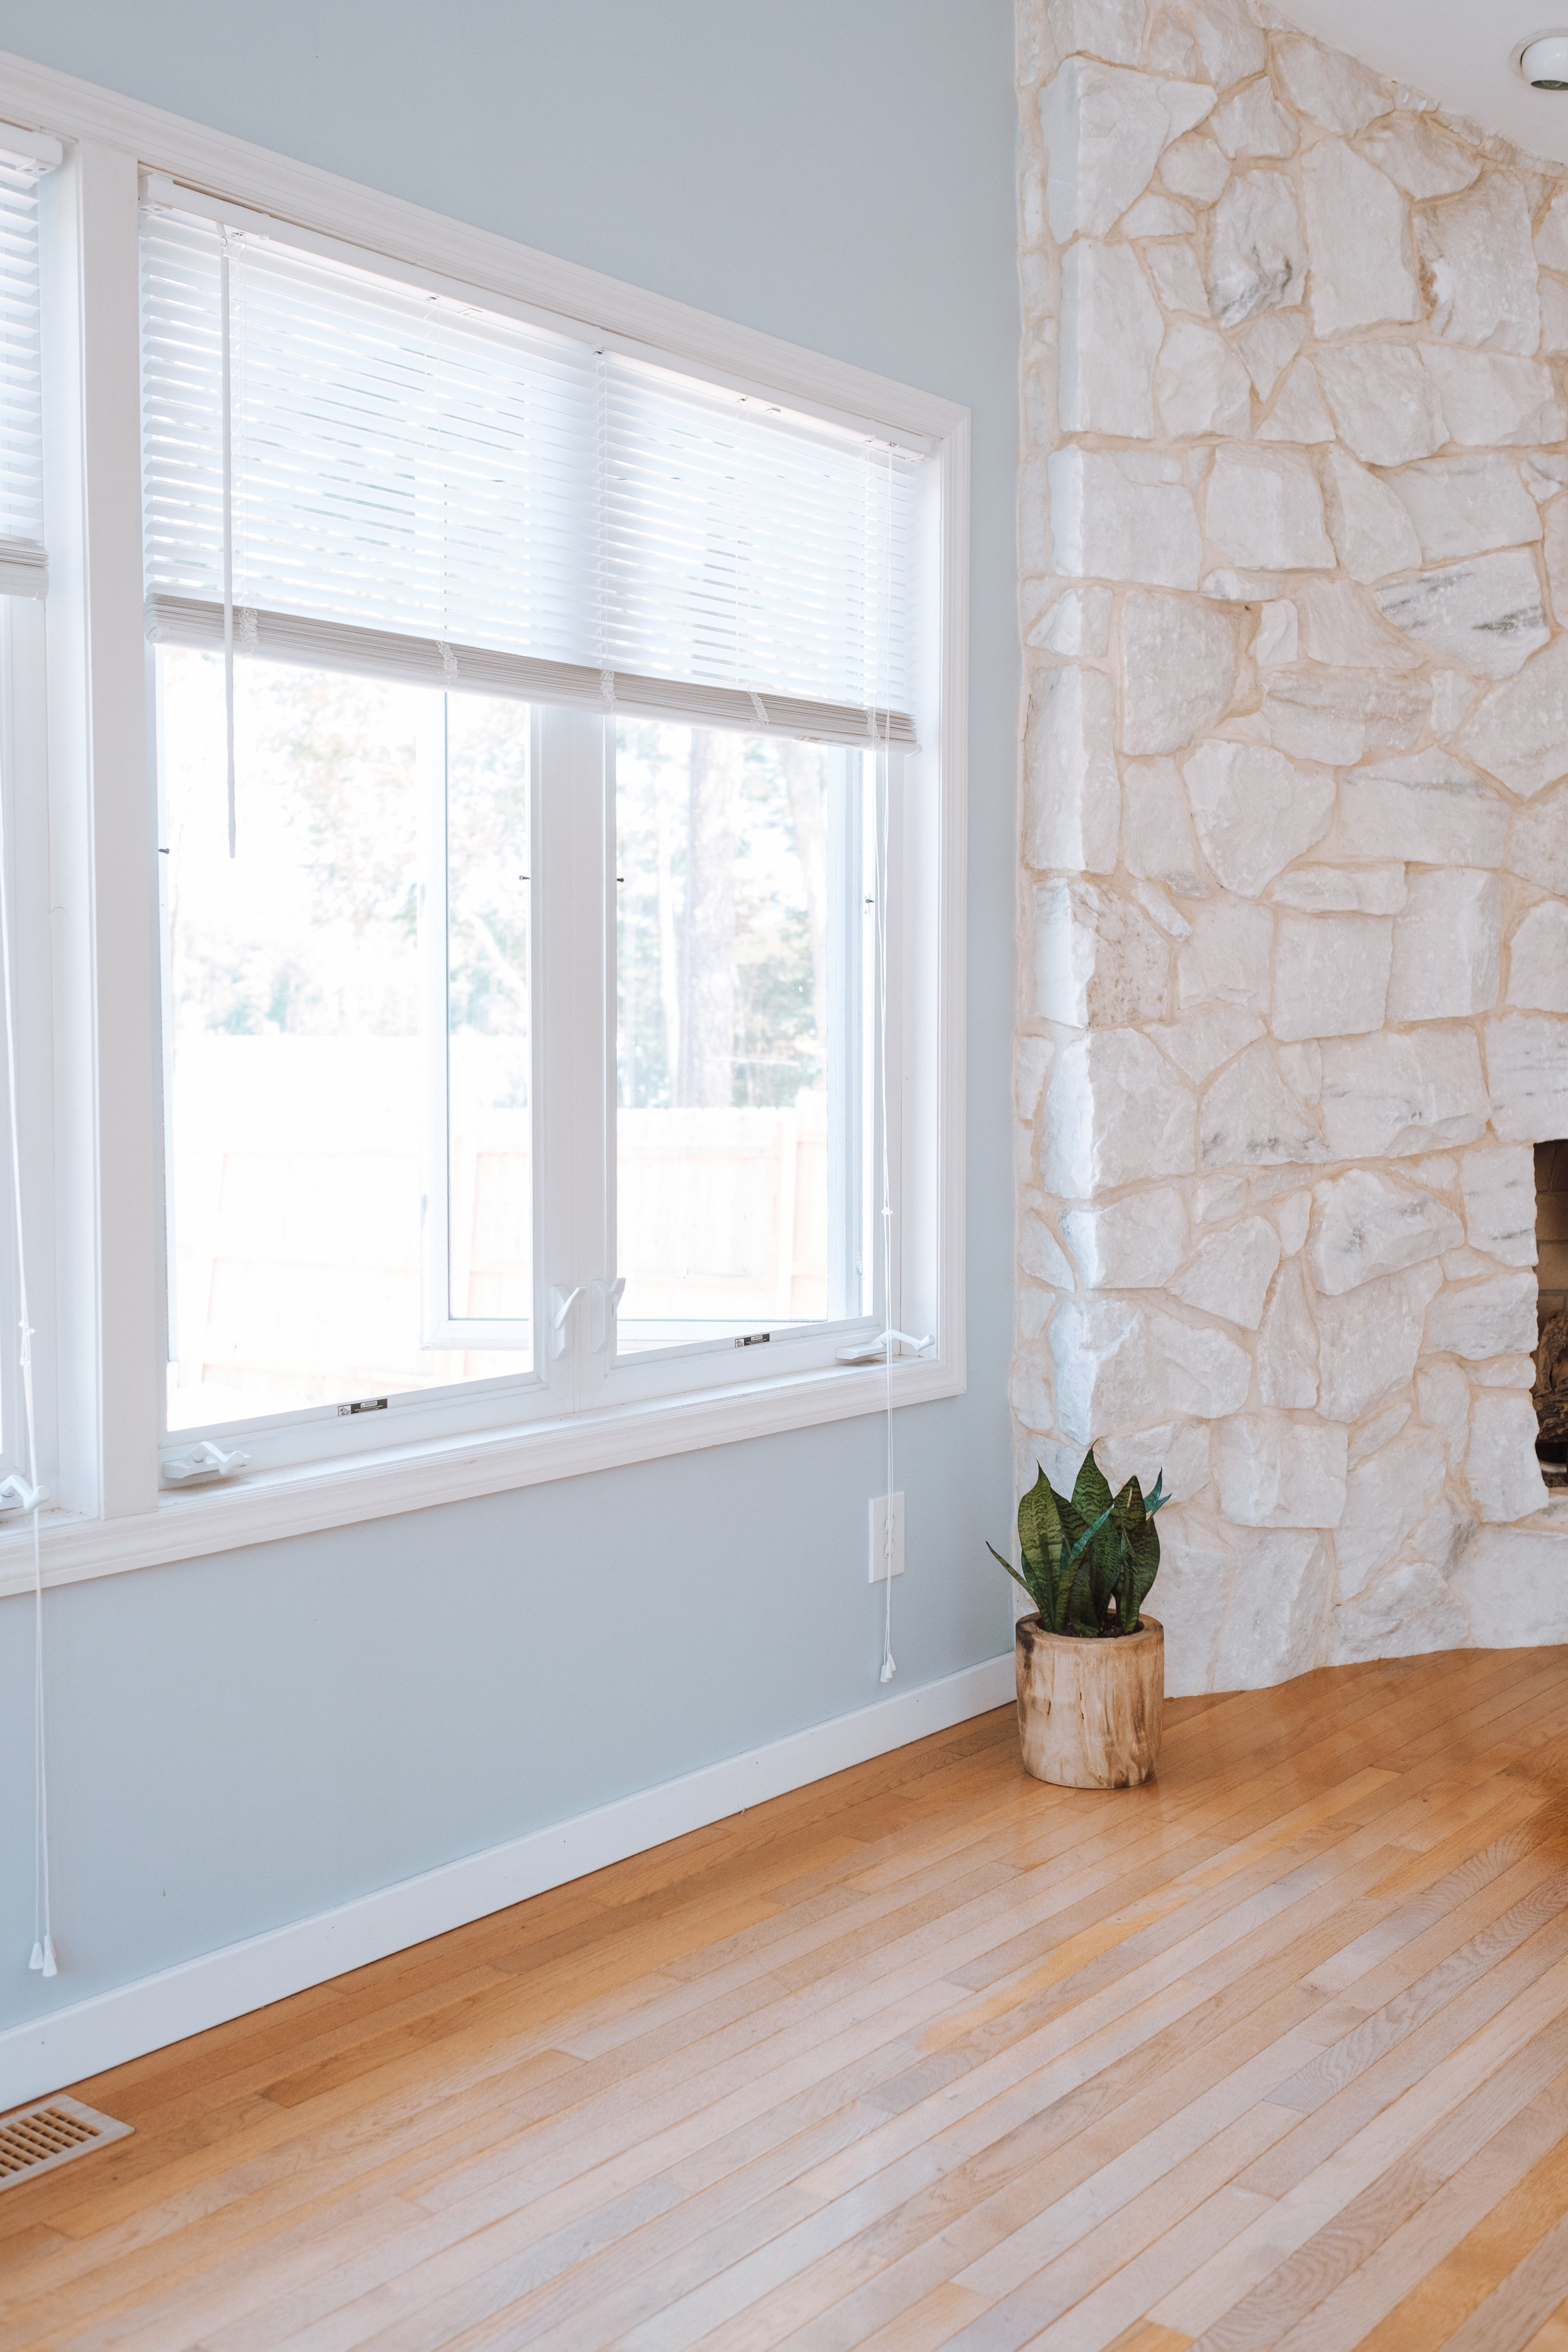 Windows - Windows are an important part of your home and old windows can leak air and waste heating and cooling. Installing new windows can reduce your carbon footprint, lower energy costs, and increase your home's comfort.